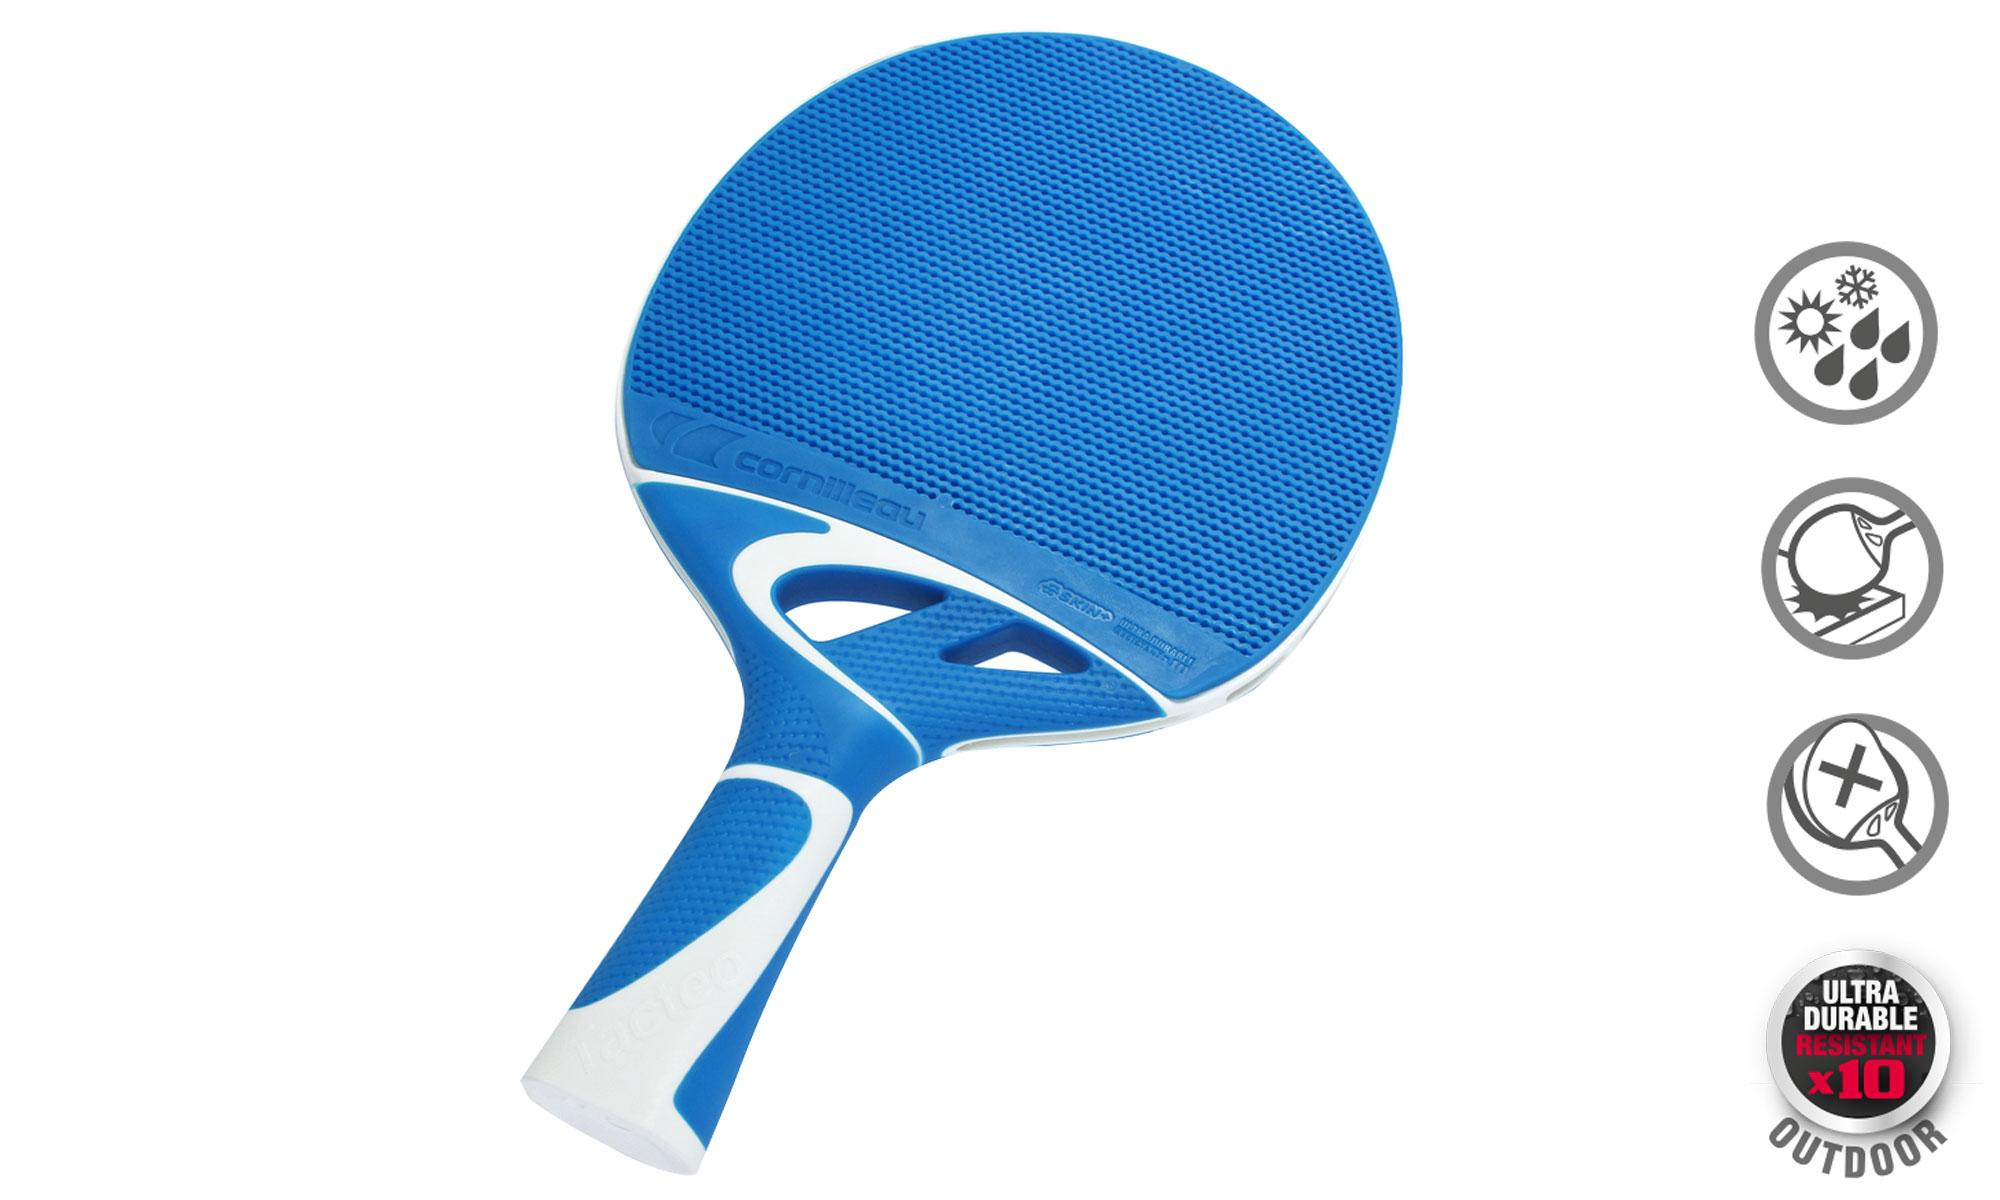 Cornilleau Tacteo 30 Turquoise Outdoor Table Tennis Bat